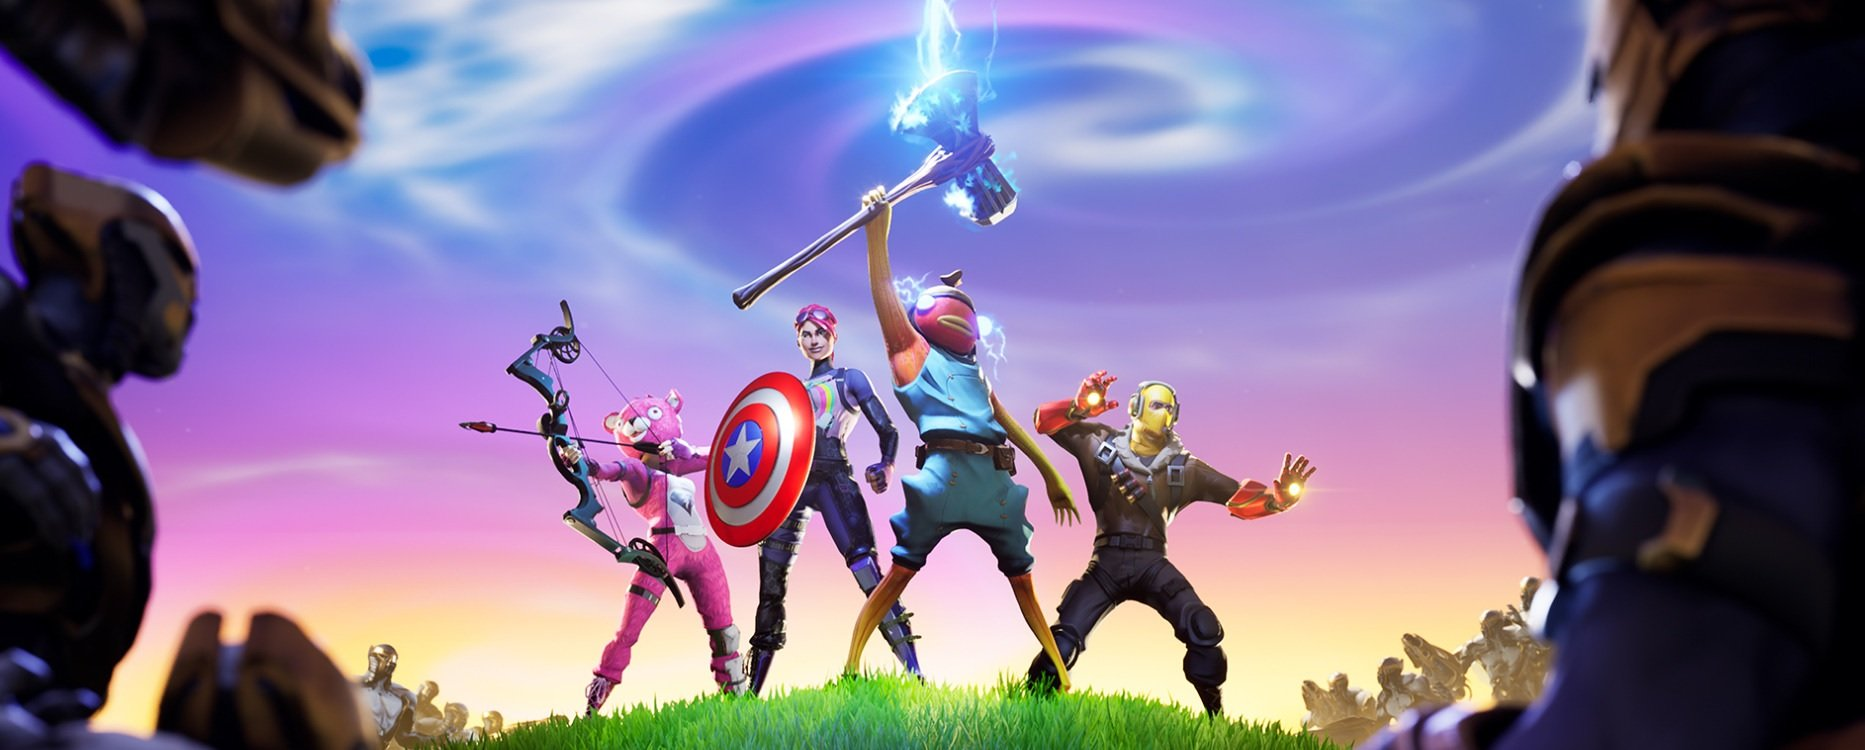 Avengers assemble in Fortnite's newest limited time mode screenshot